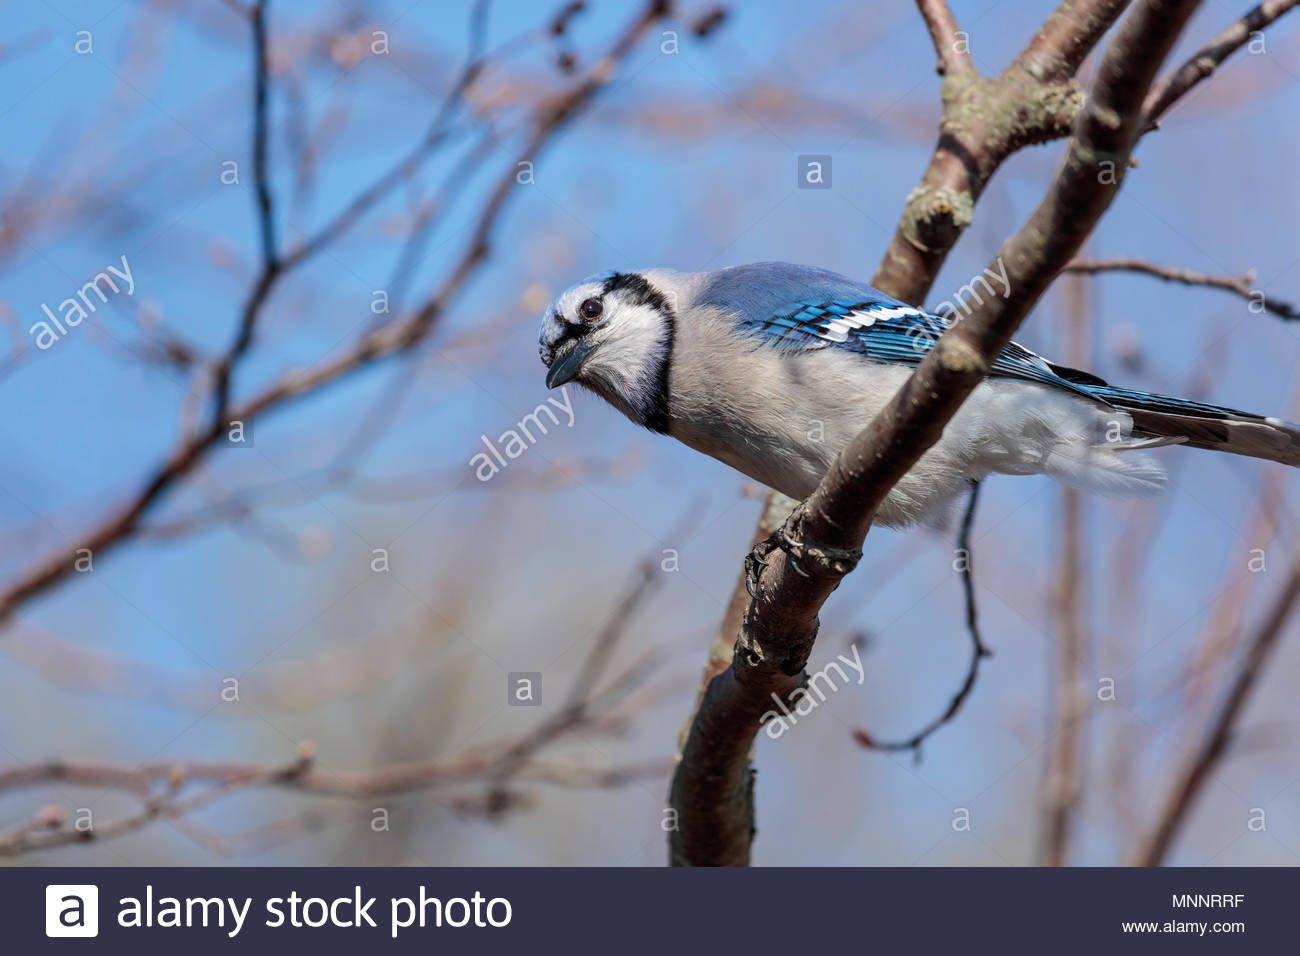 Blue jay Cyanocitta cristata showing structural coloration - Stock Image